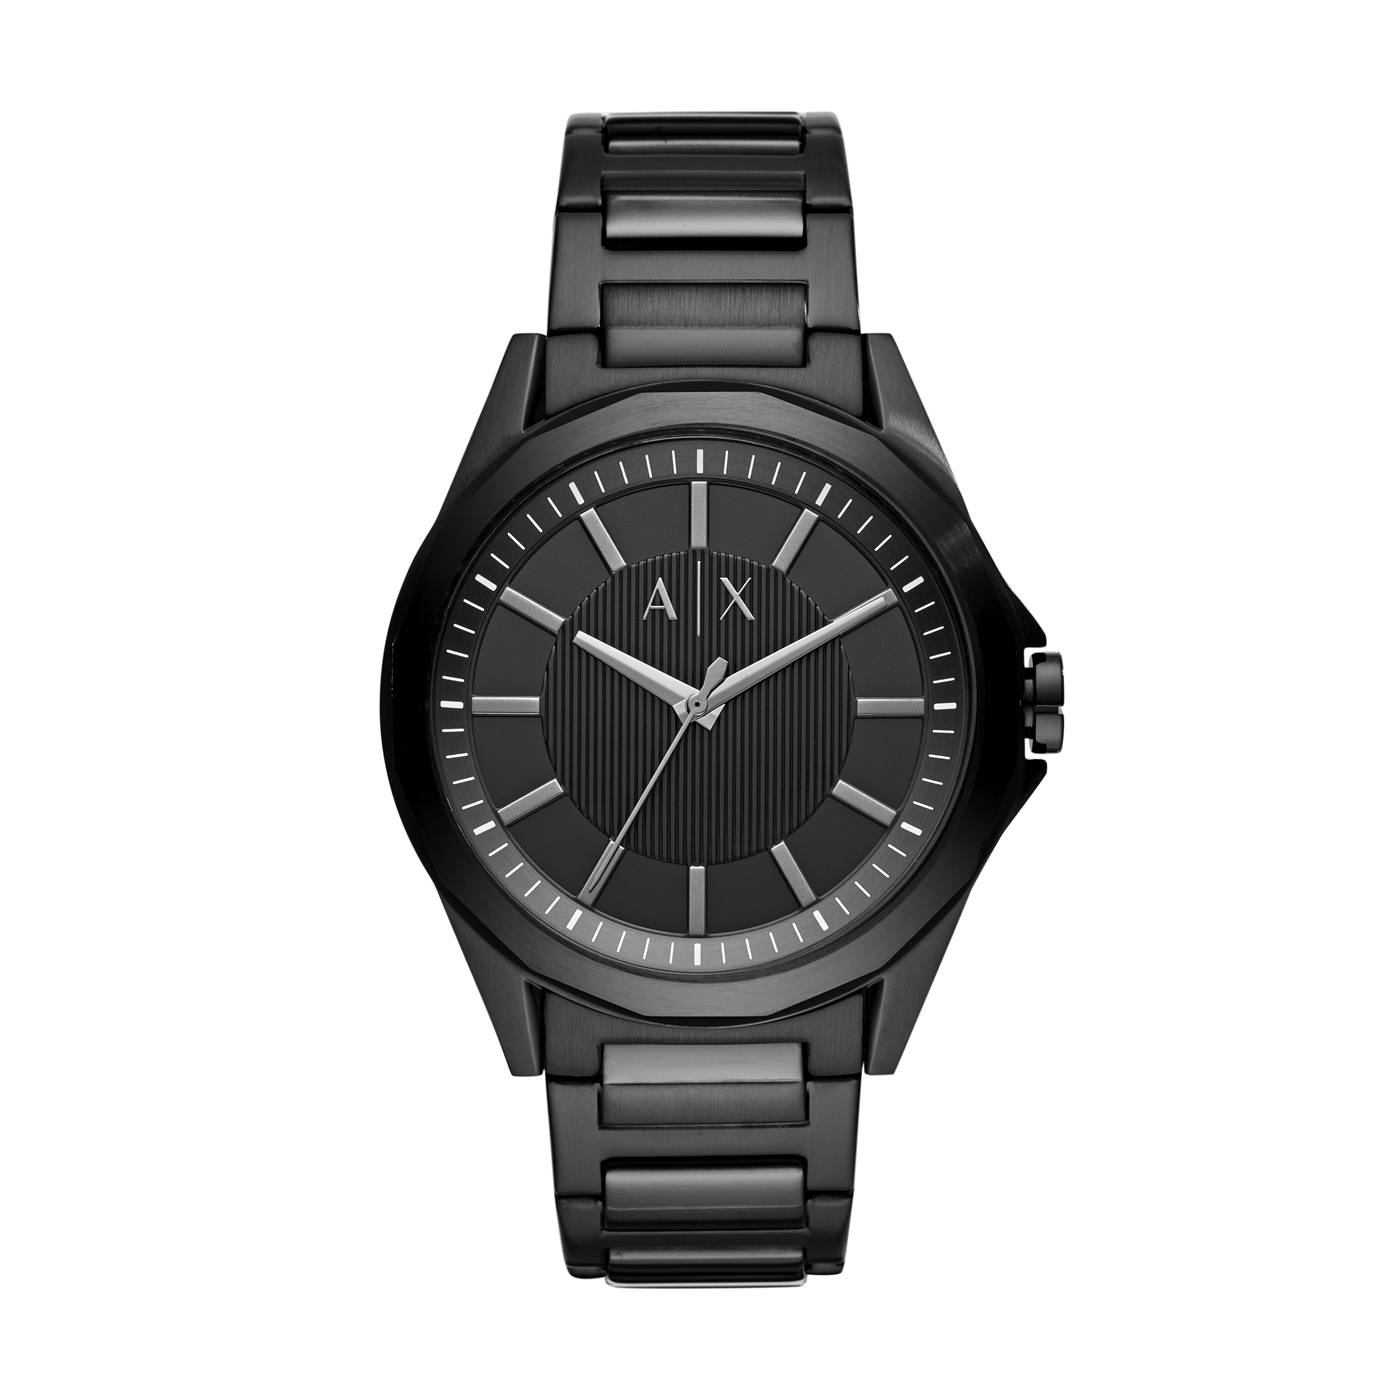 Bilde av Armani Exchange Drexler Watch AX2620